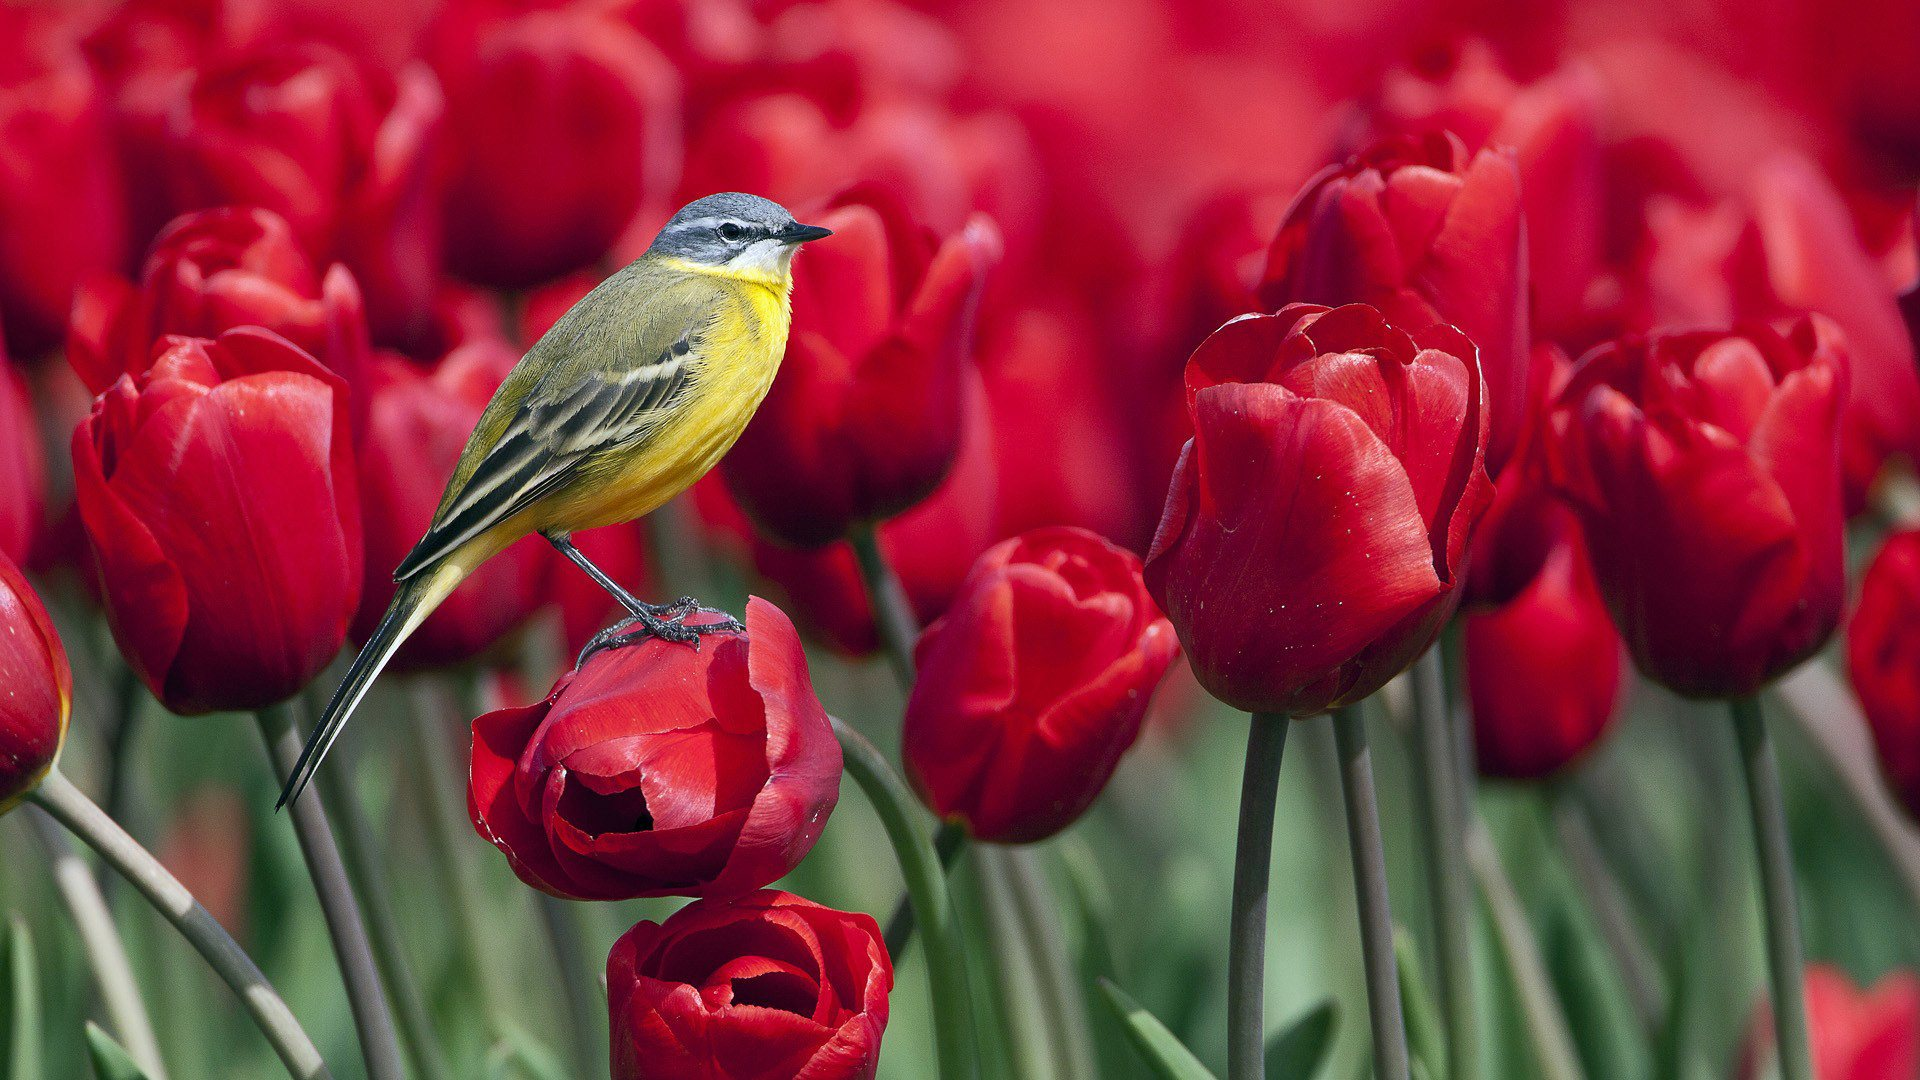 Bird Sitting on Red Flowers | Wallpapers | Abstract ...